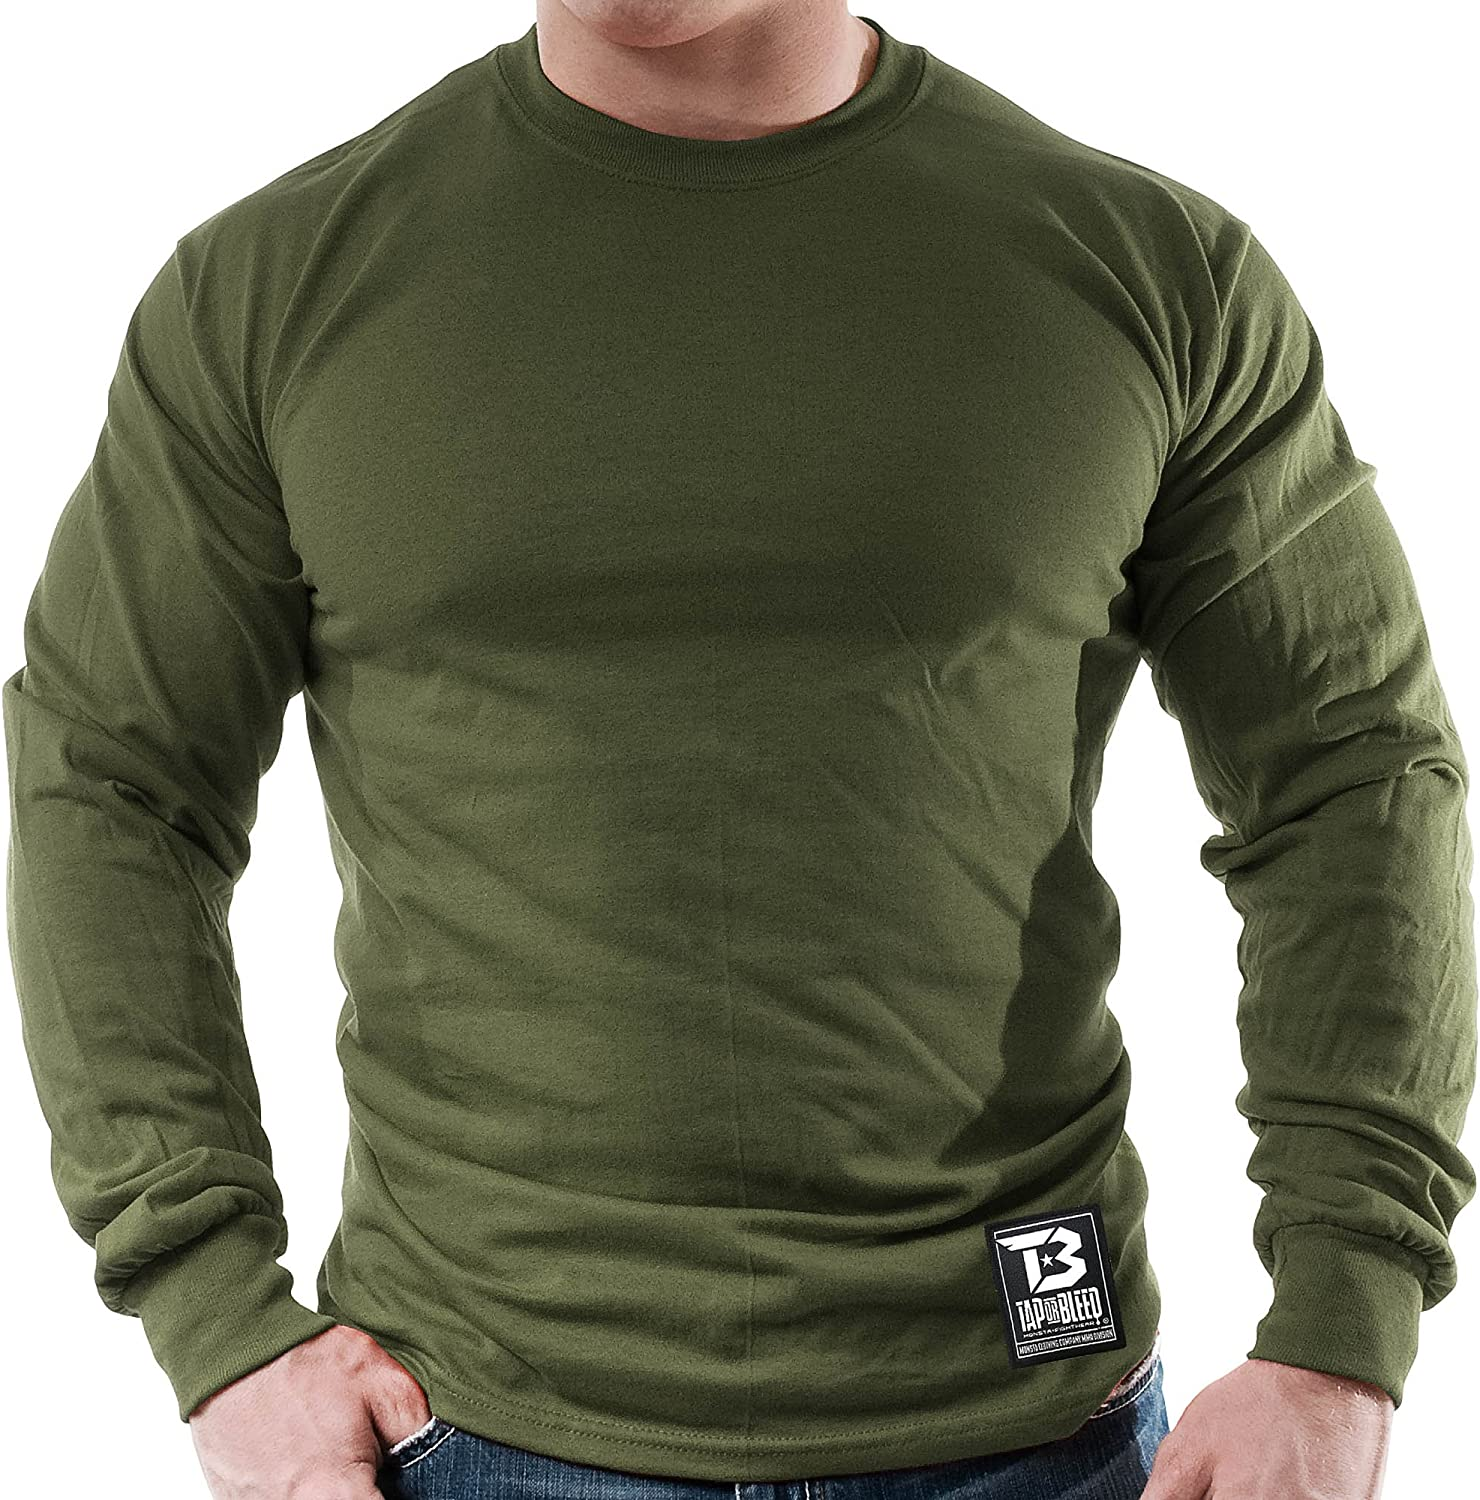 Monsta Clothing Co Tap or Bleed Classic-000 Fitness Gym LNGSLV Mens MMA Fight